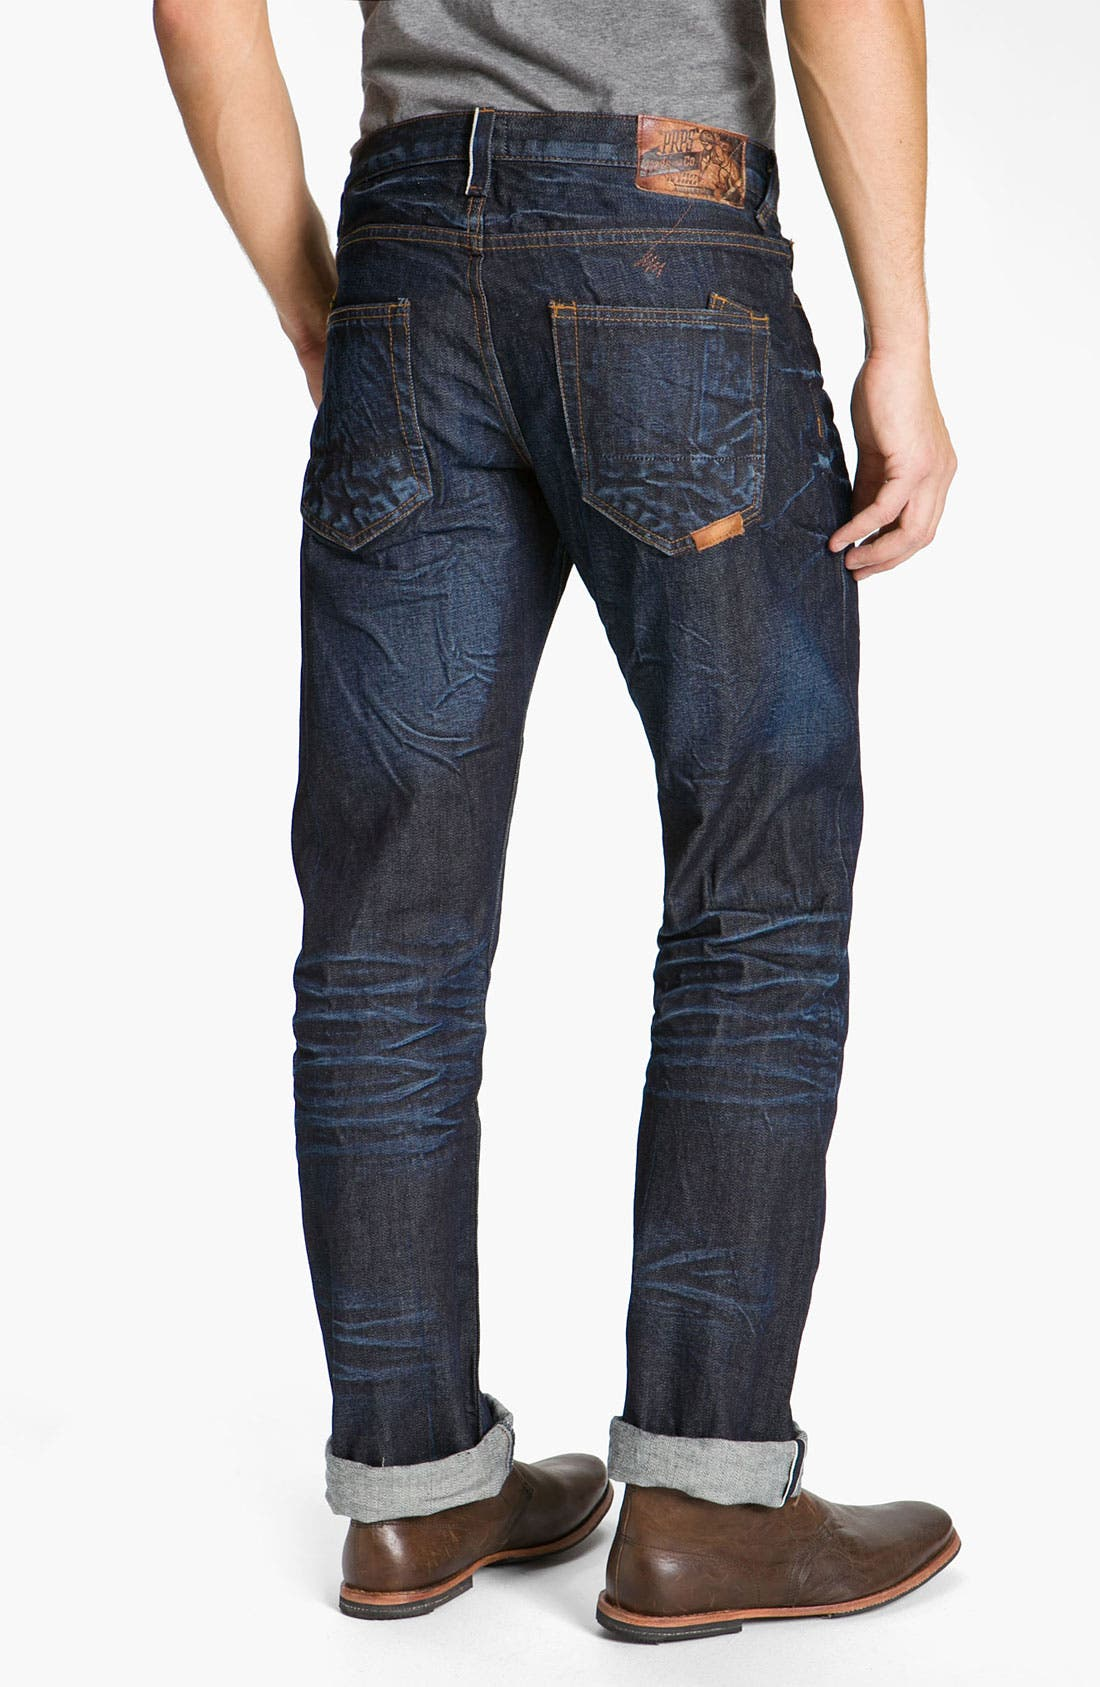 Main Image - PRPS 'Snowy Crevasses Barracuda' Straight Leg Jeans (1 Year Wash)